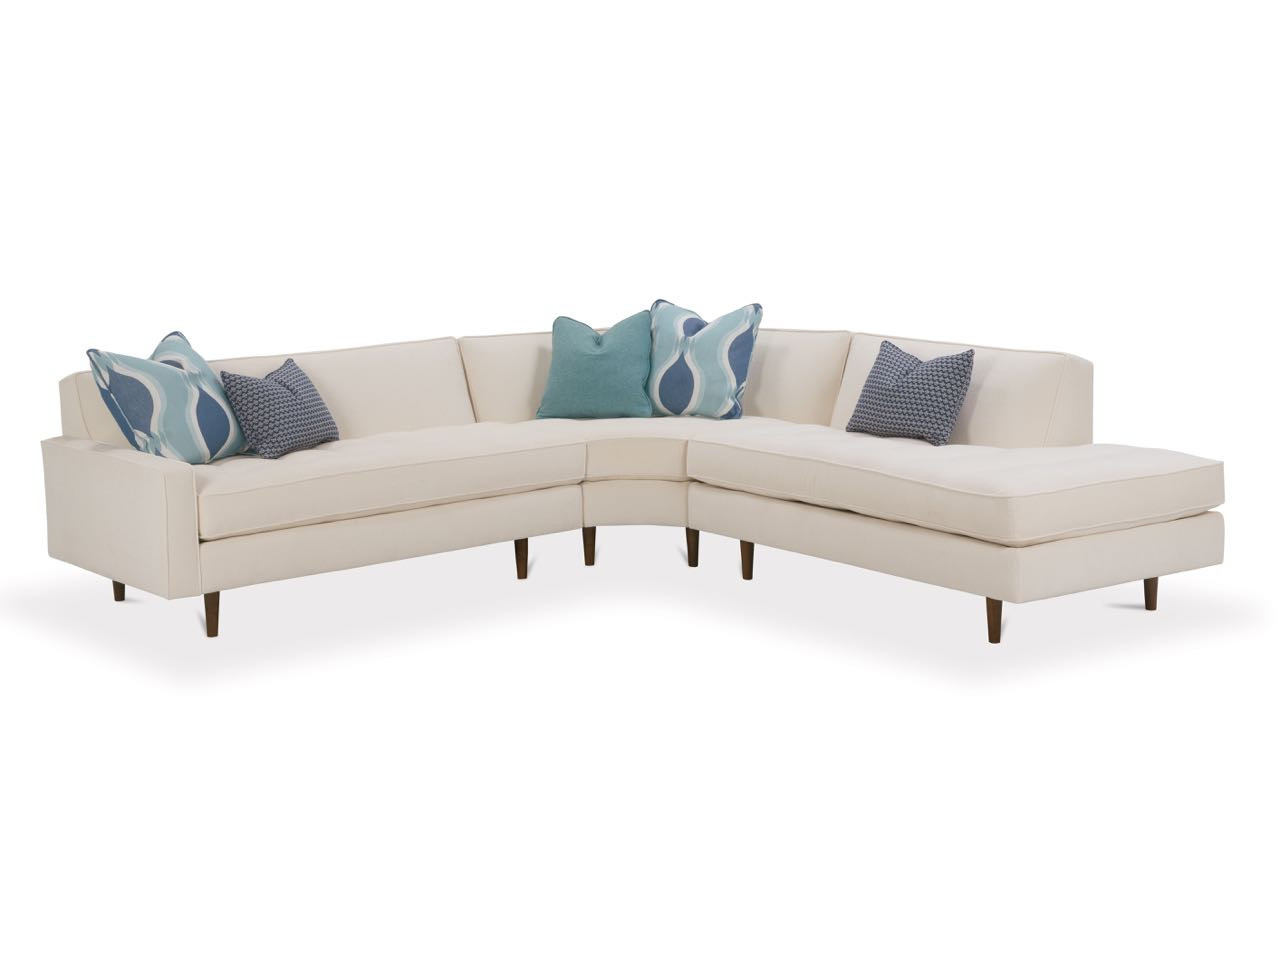 Tremendous Alton Sectional Upholstered Sectionals Sofas Sectionals Ibusinesslaw Wood Chair Design Ideas Ibusinesslaworg